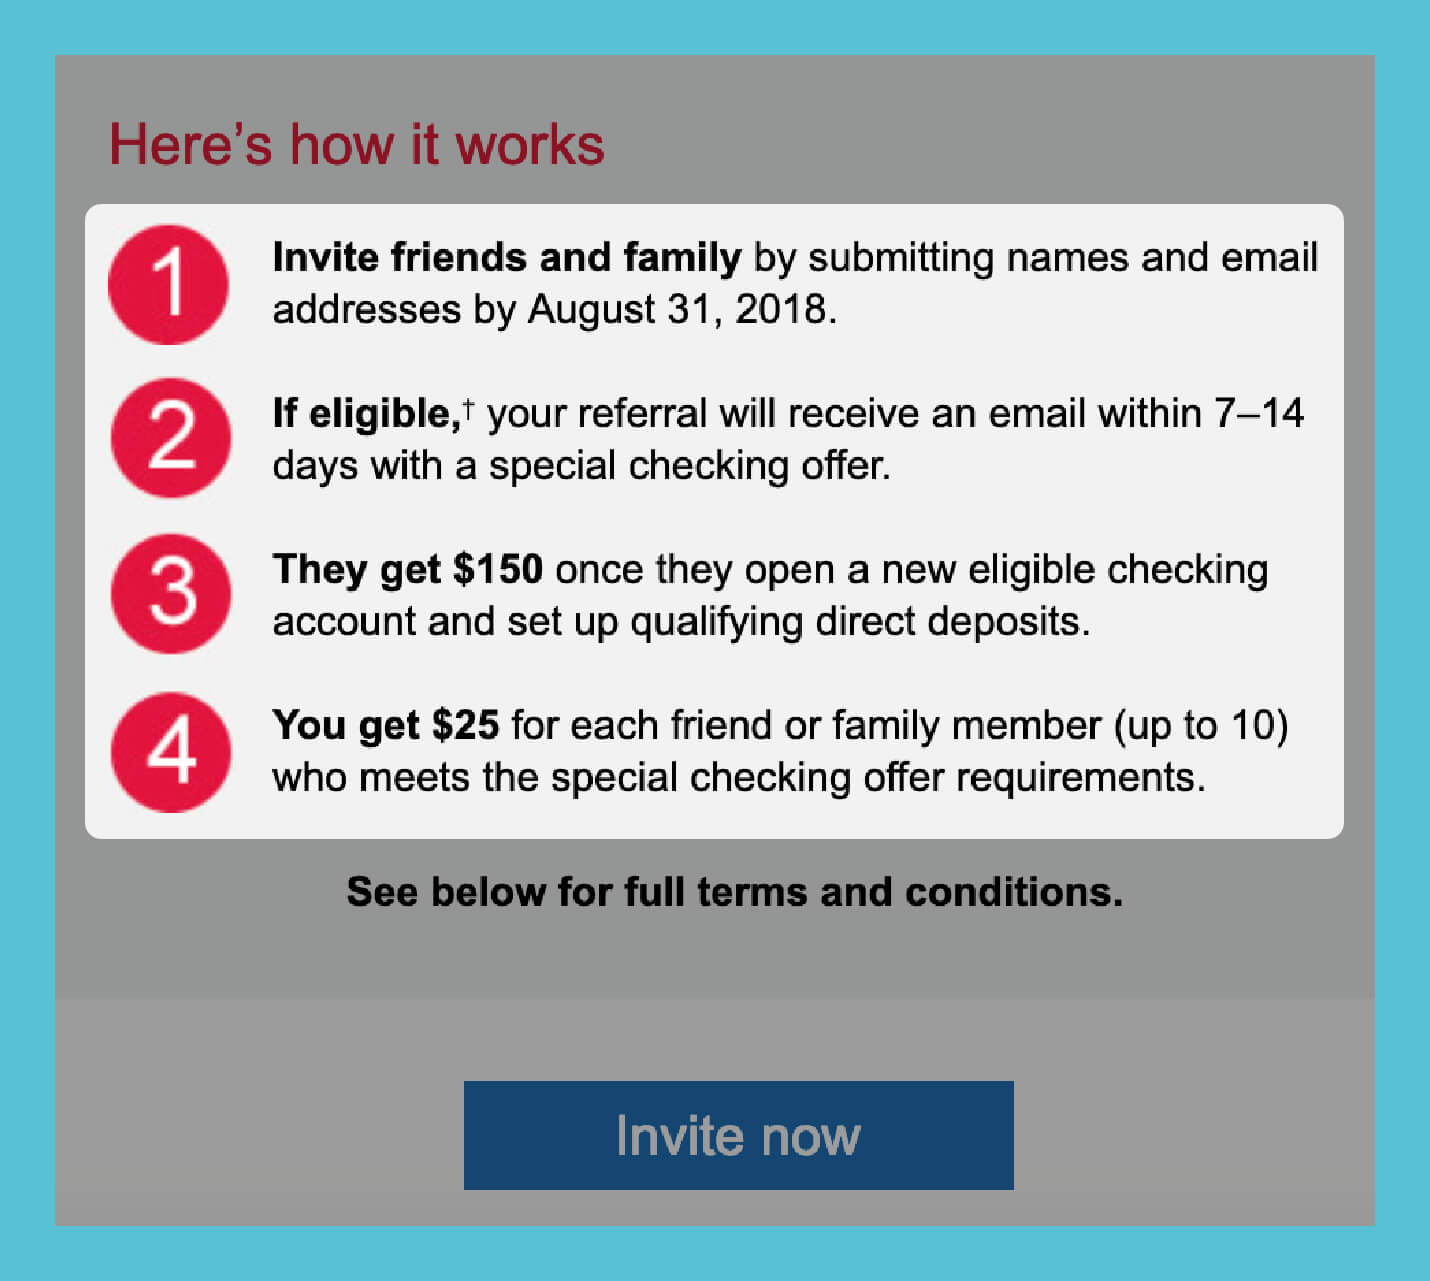 referral email outline the steps of referring new users from bank of america